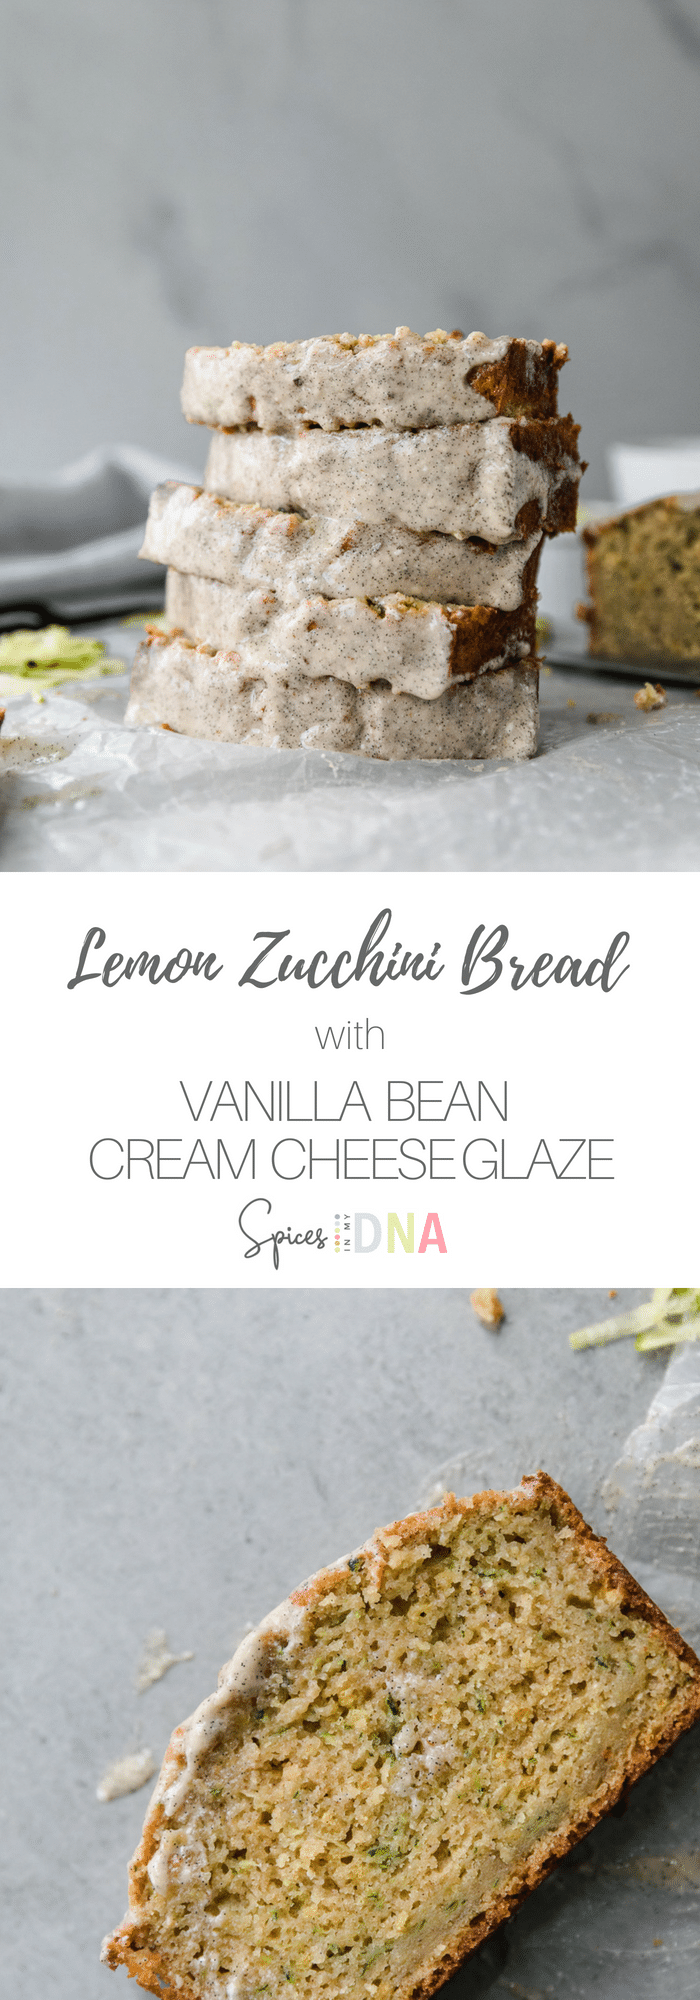 This Lemon Zucchini Bread with Vanilla Bean Cream Cheese Glaze is incredibly flavorful, super moist, and just the right amount of lemony. It's topped with a creamy vanilla bean glaze, and it makes the most perfect breakfast, afternoon snack, or dessert! The best way to use up your leftover summer zucchini! #zucchini #zucchinibread #summerrecipe